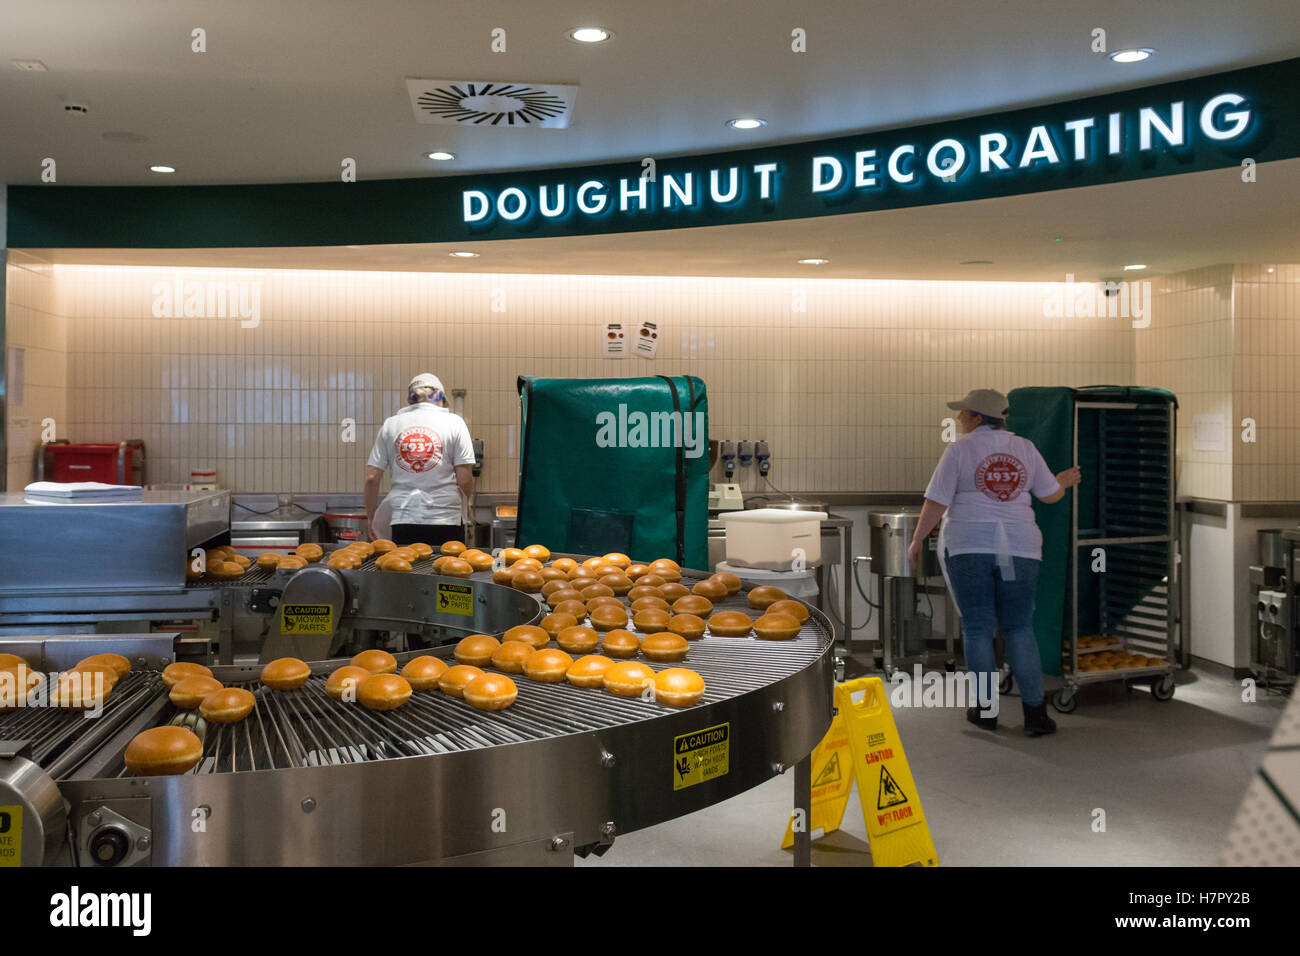 Krispy Kreme Doughnuts Doughnut theatre and Doughnut Decorating window and production line at INTU Braehead, Glasgow, - Stock Image